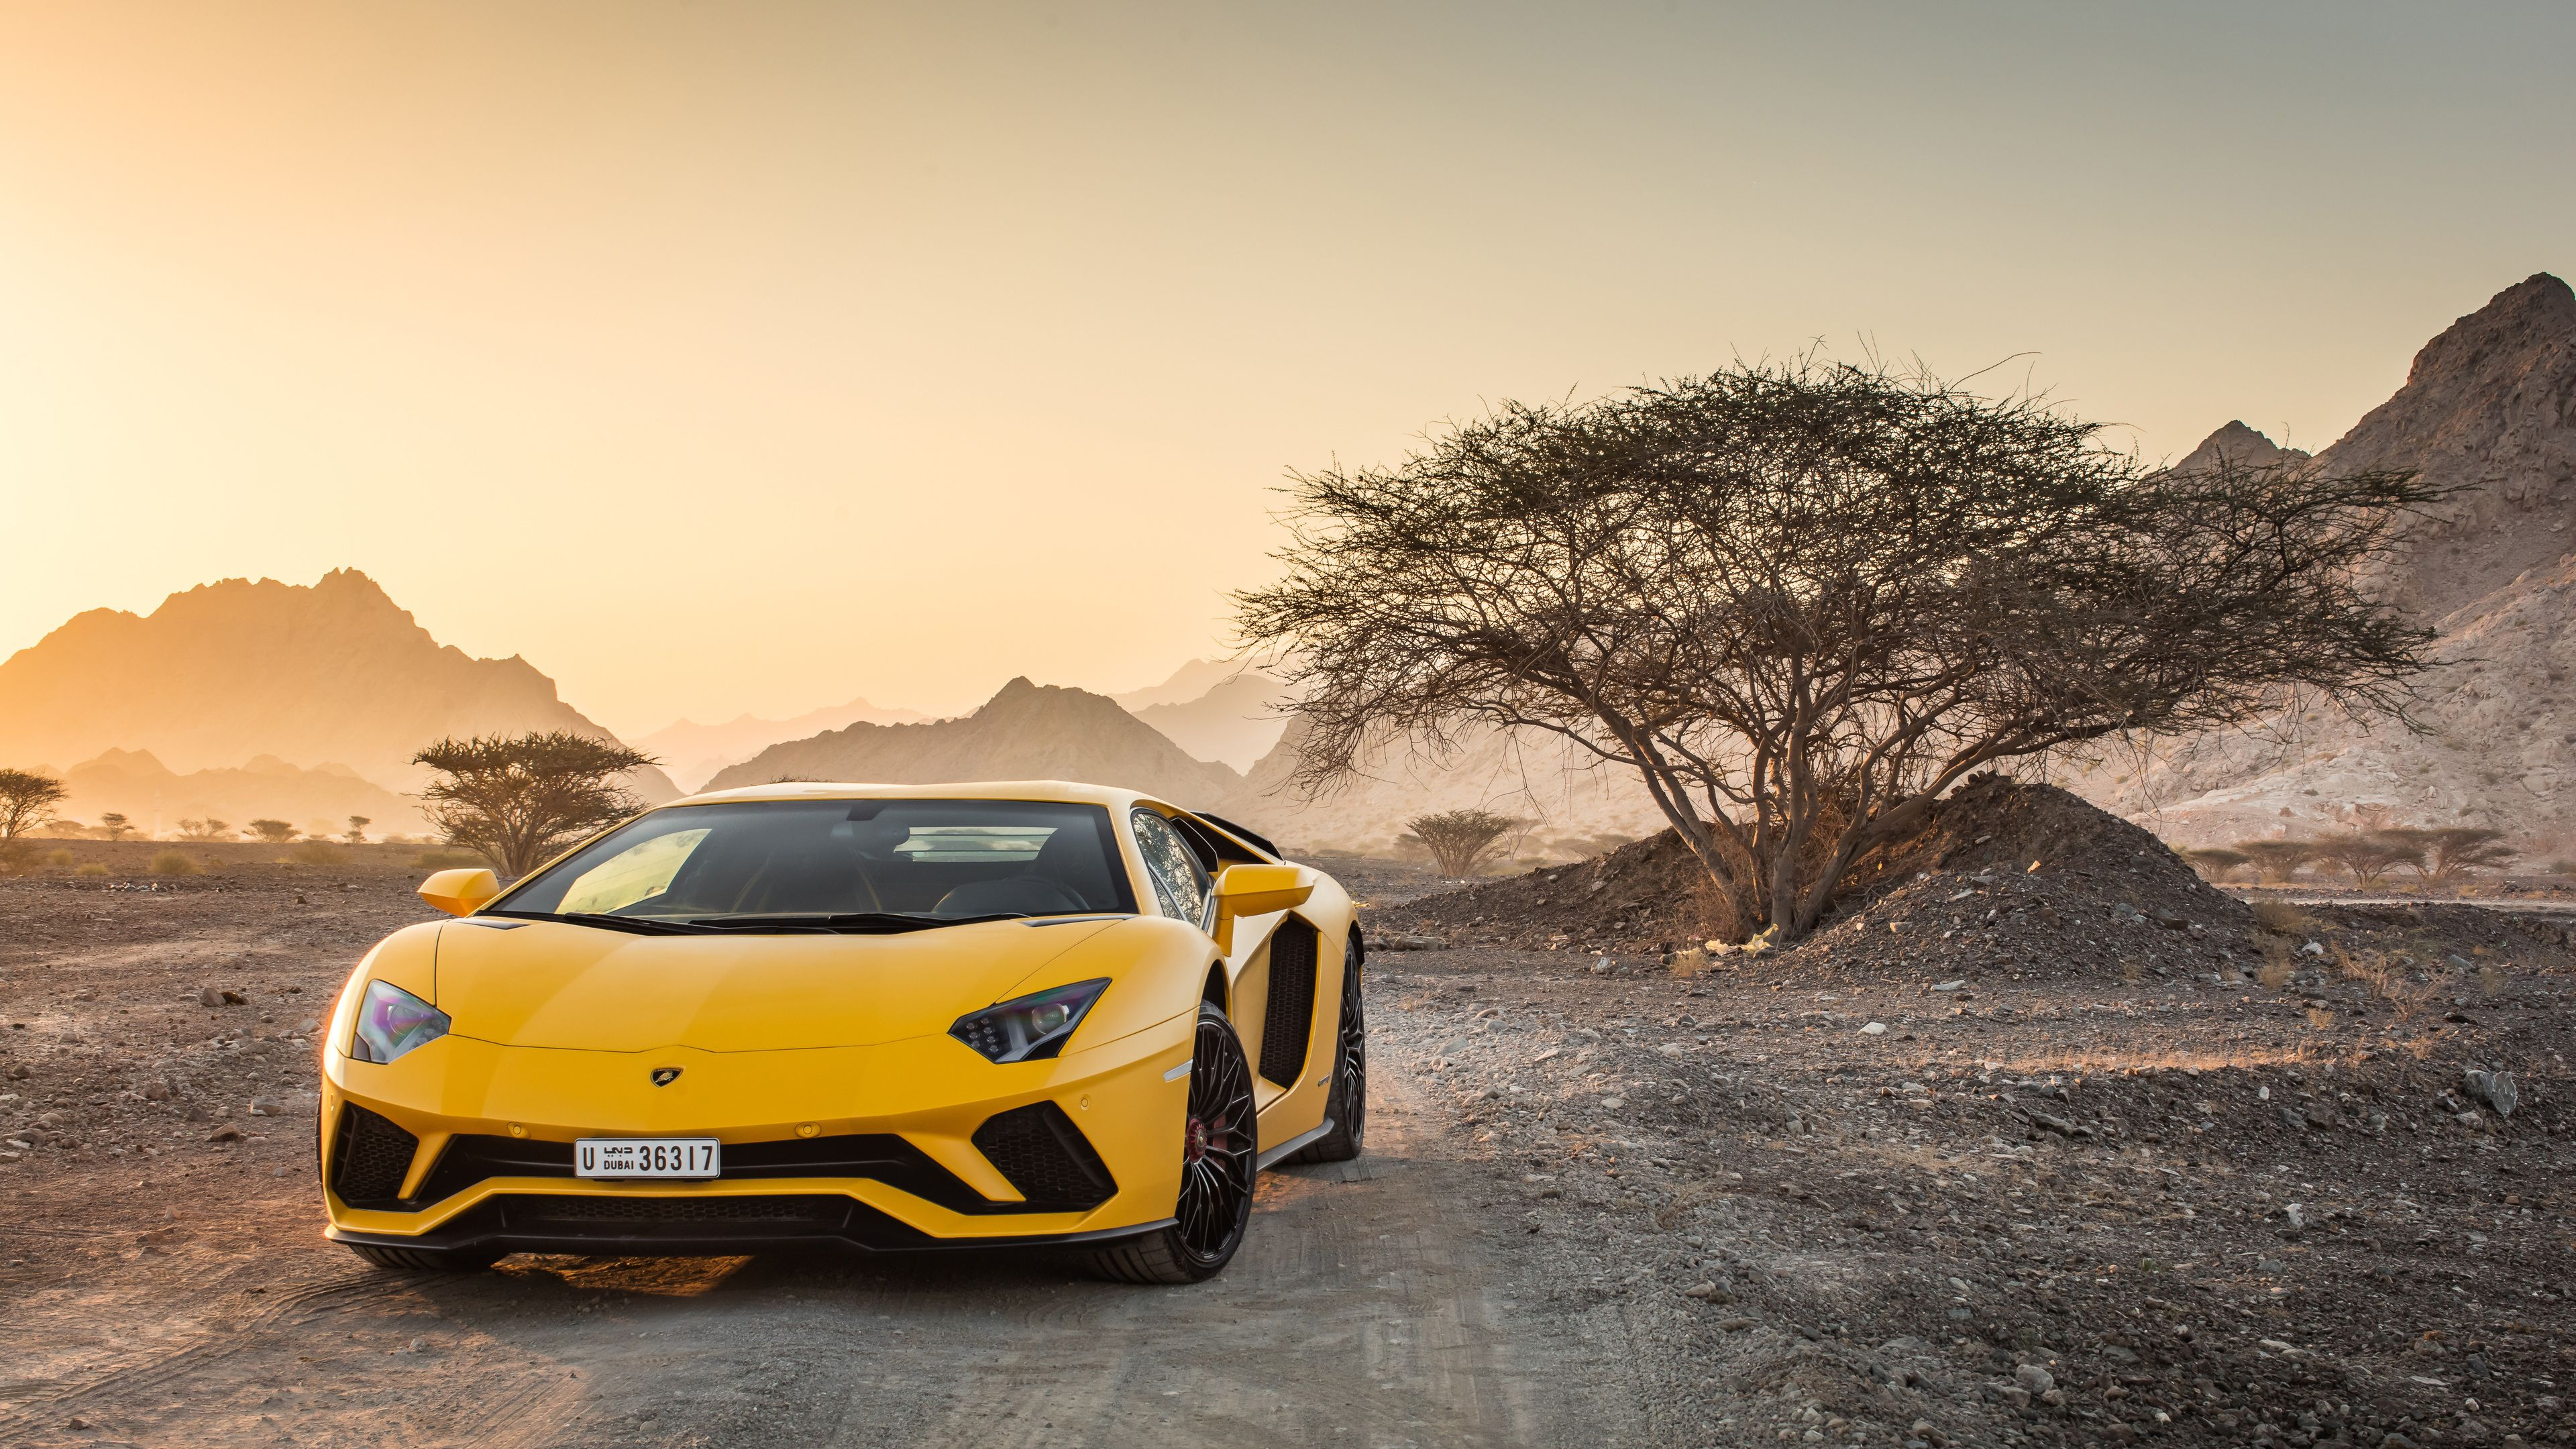 Exotics for your desktop, phone or tablet. Black And Yellow Car Wallpaper Hd